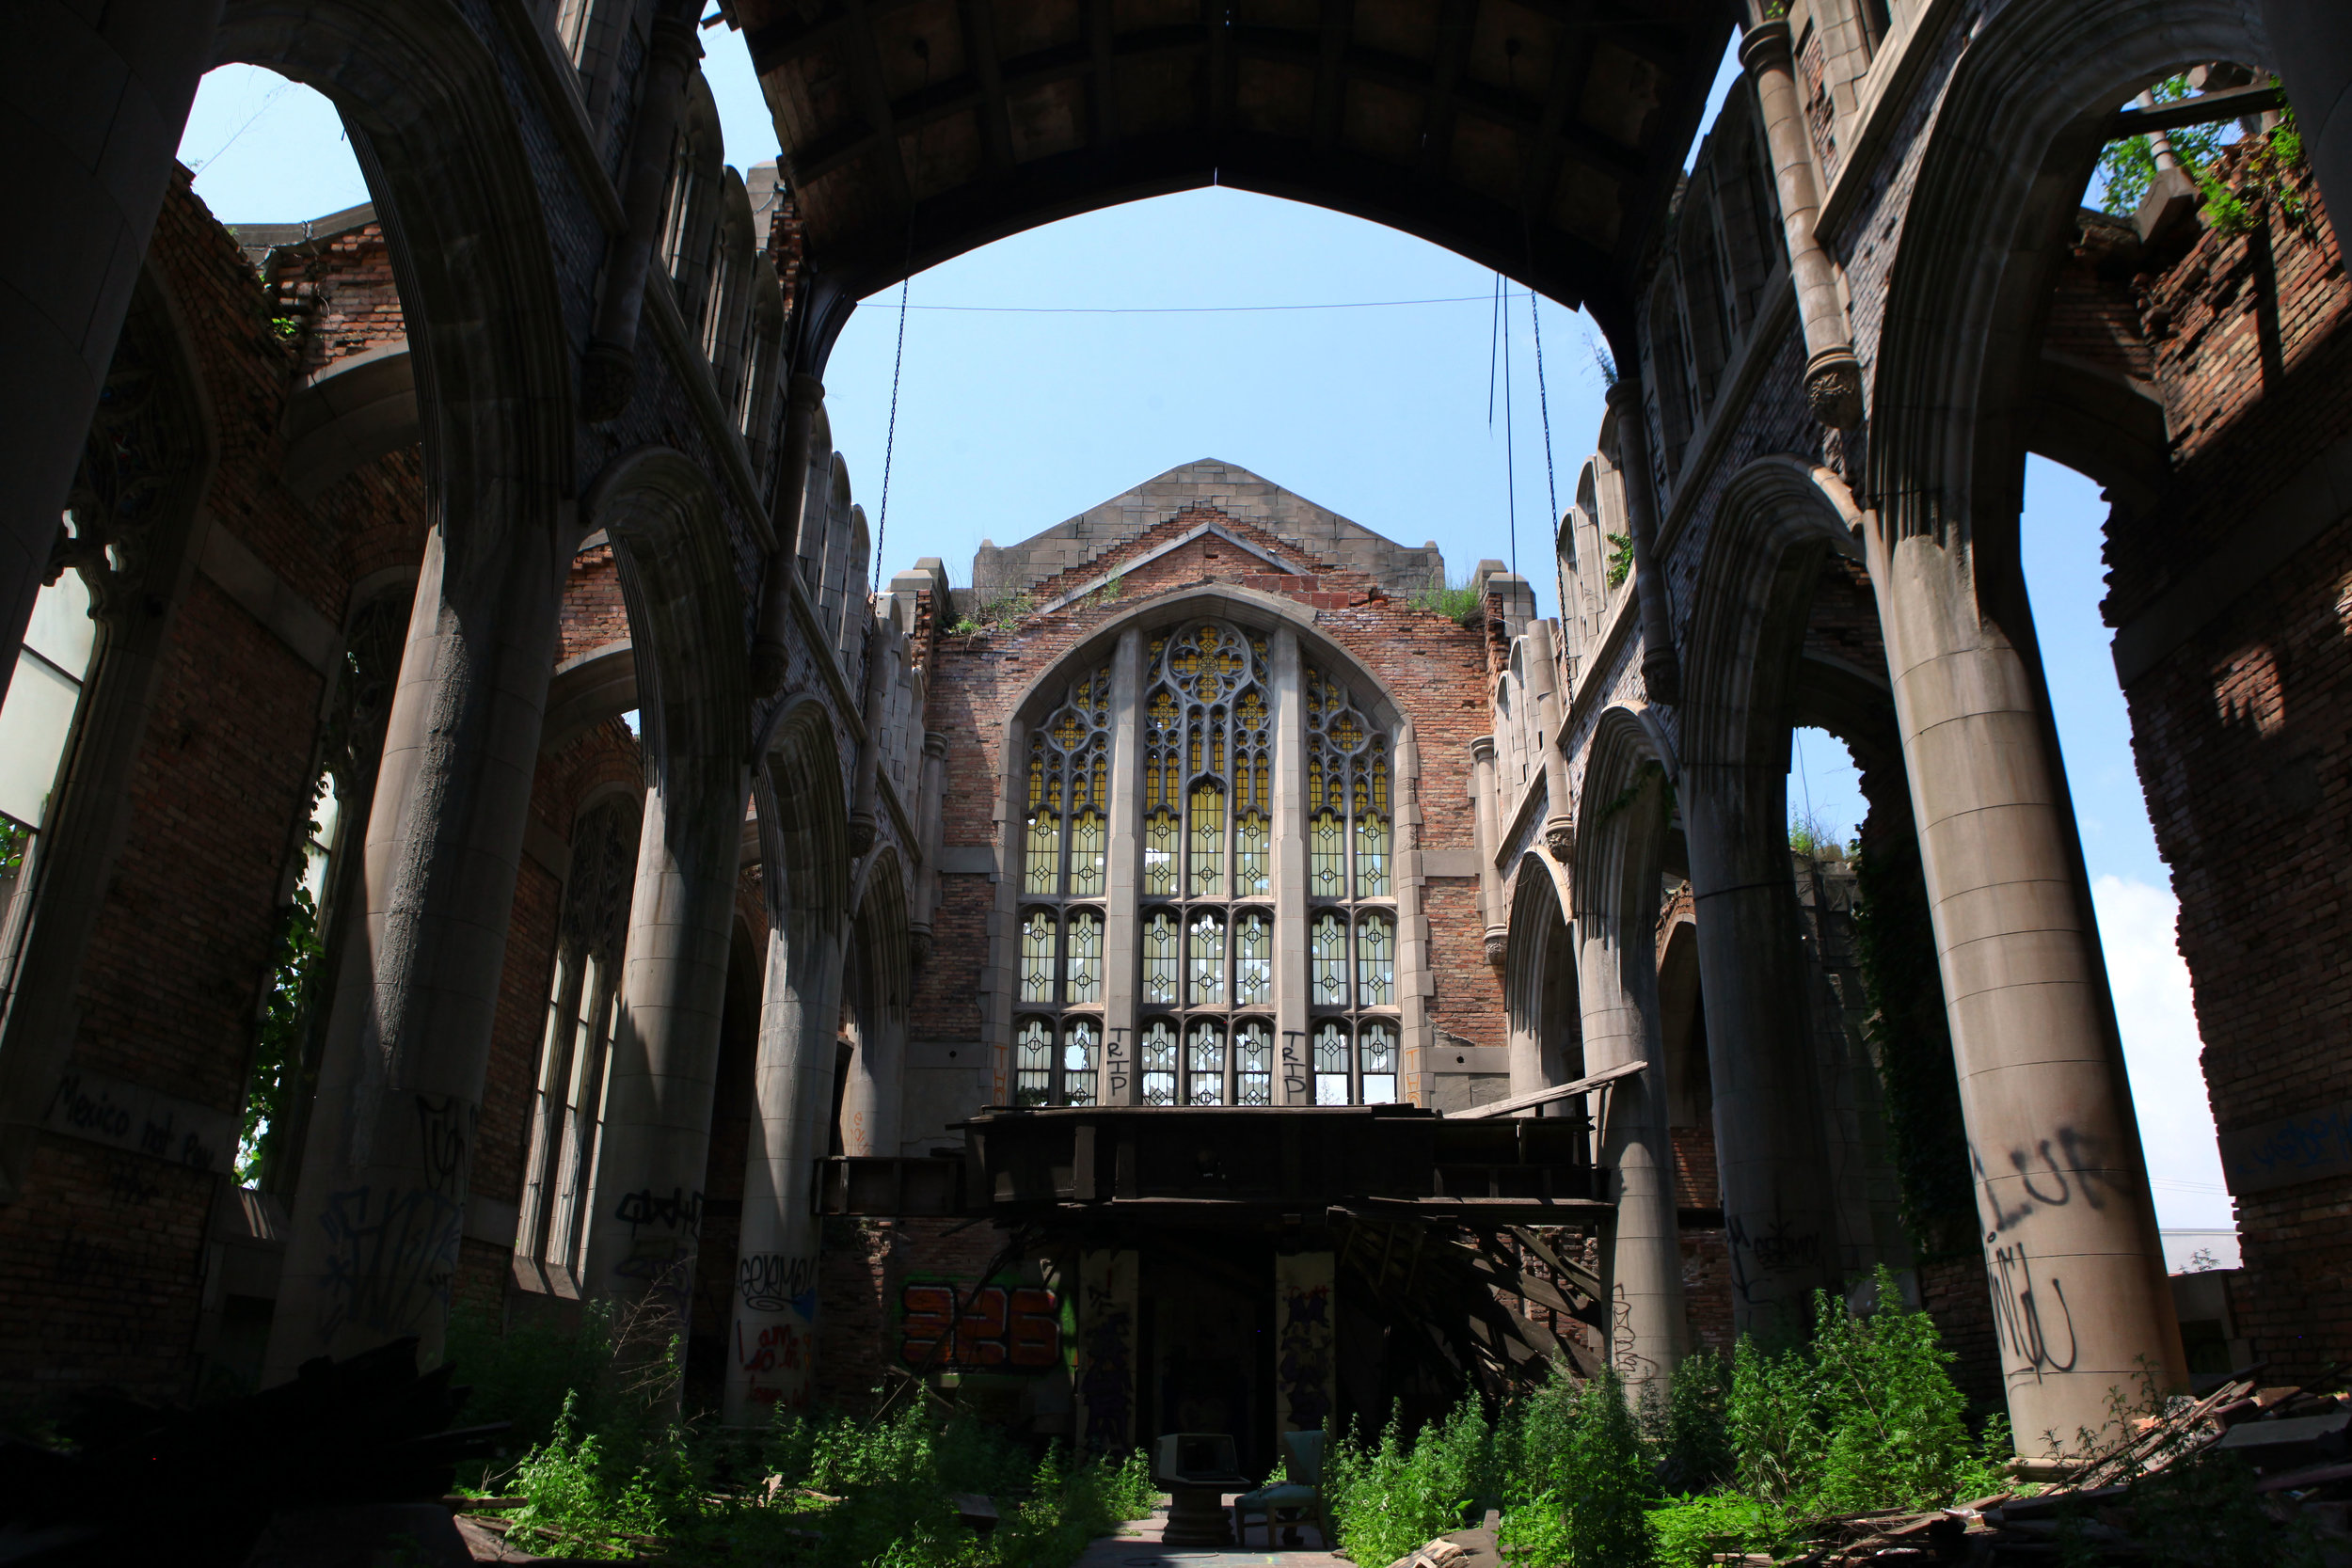 The interior of the abandoned City Methodist Church in Gary.